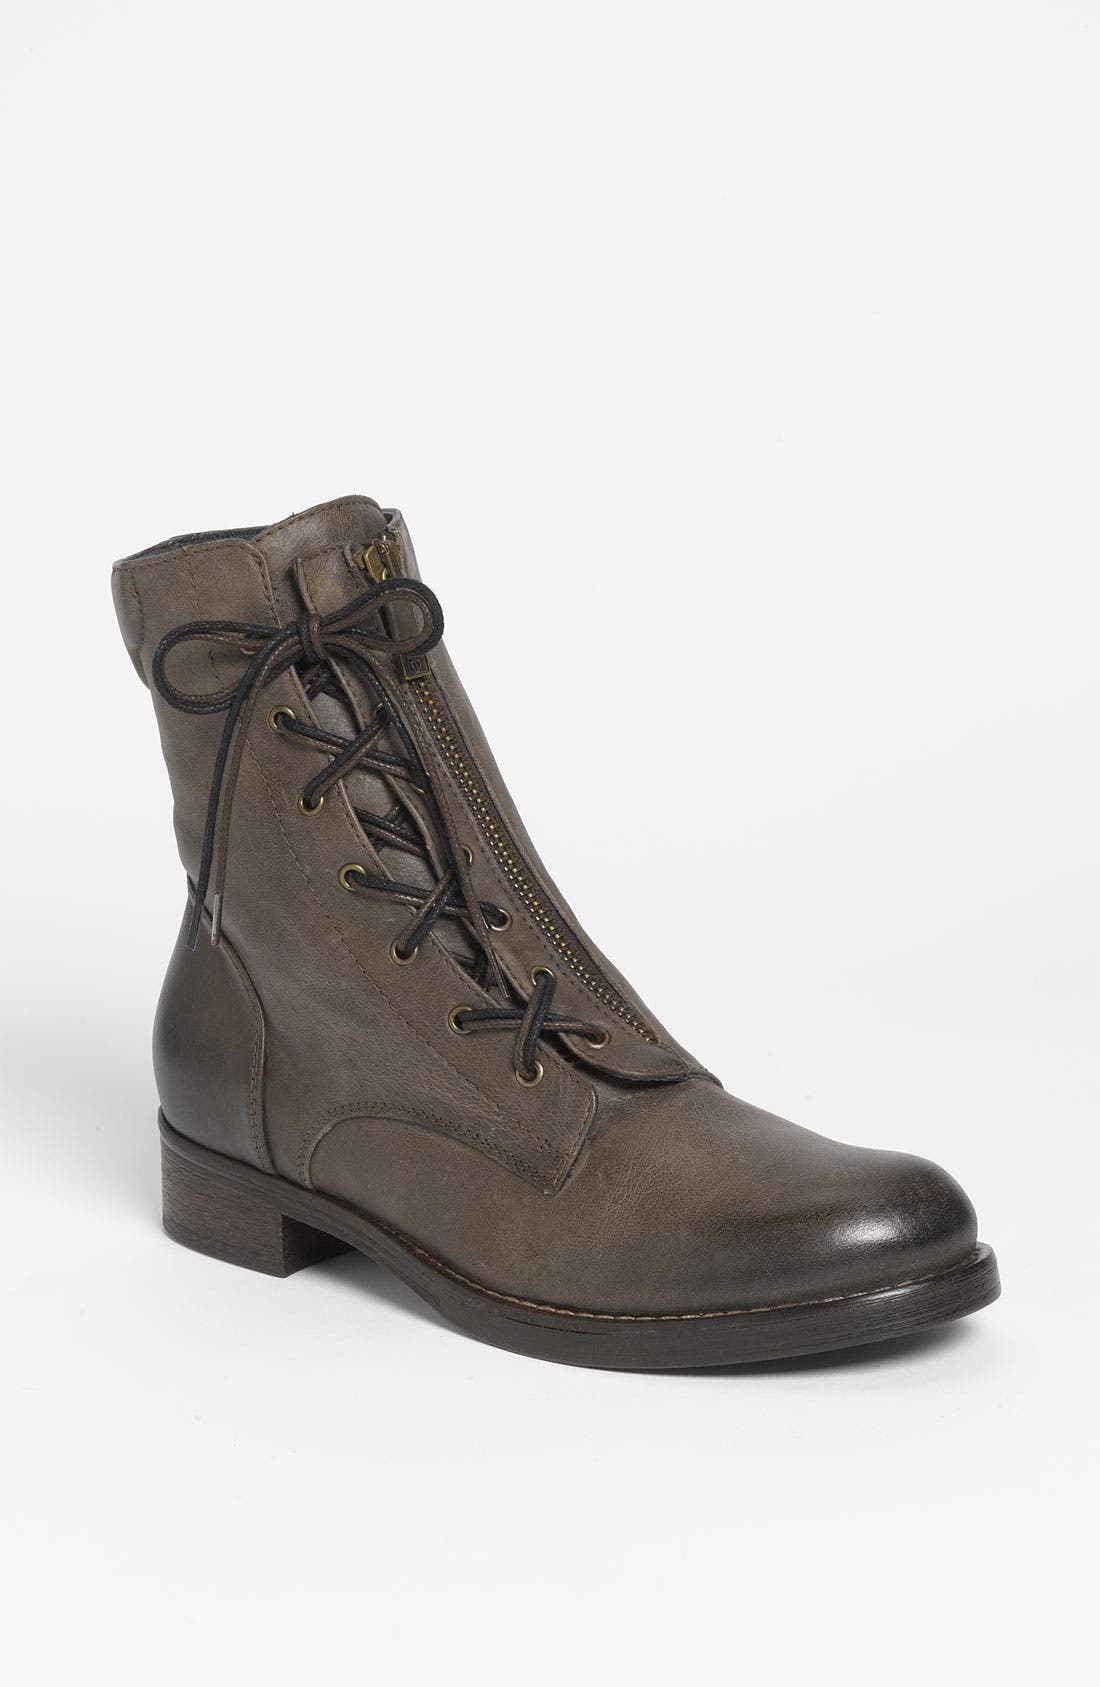 Alternate Image 1 Selected - Alberto Fermani Lace-Up Boot